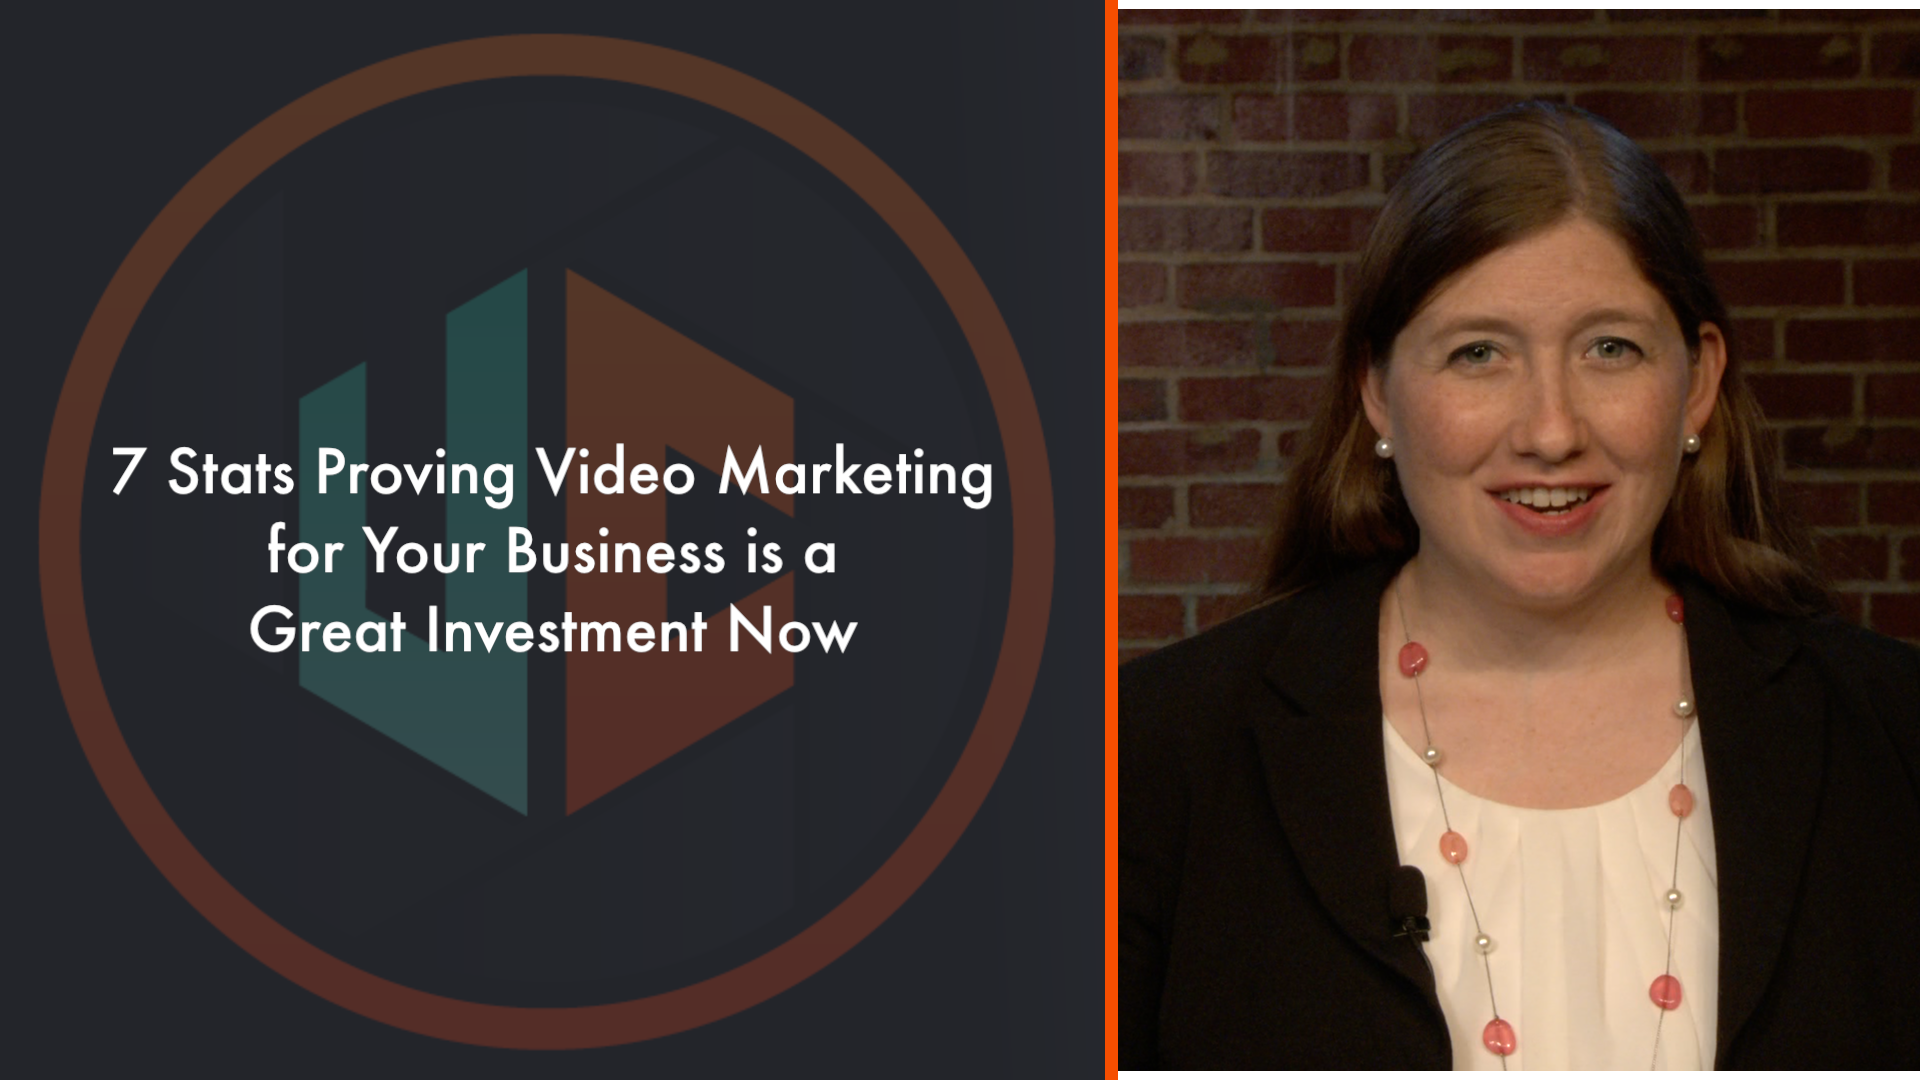 7 Stats Video Marketing Business Great Investment